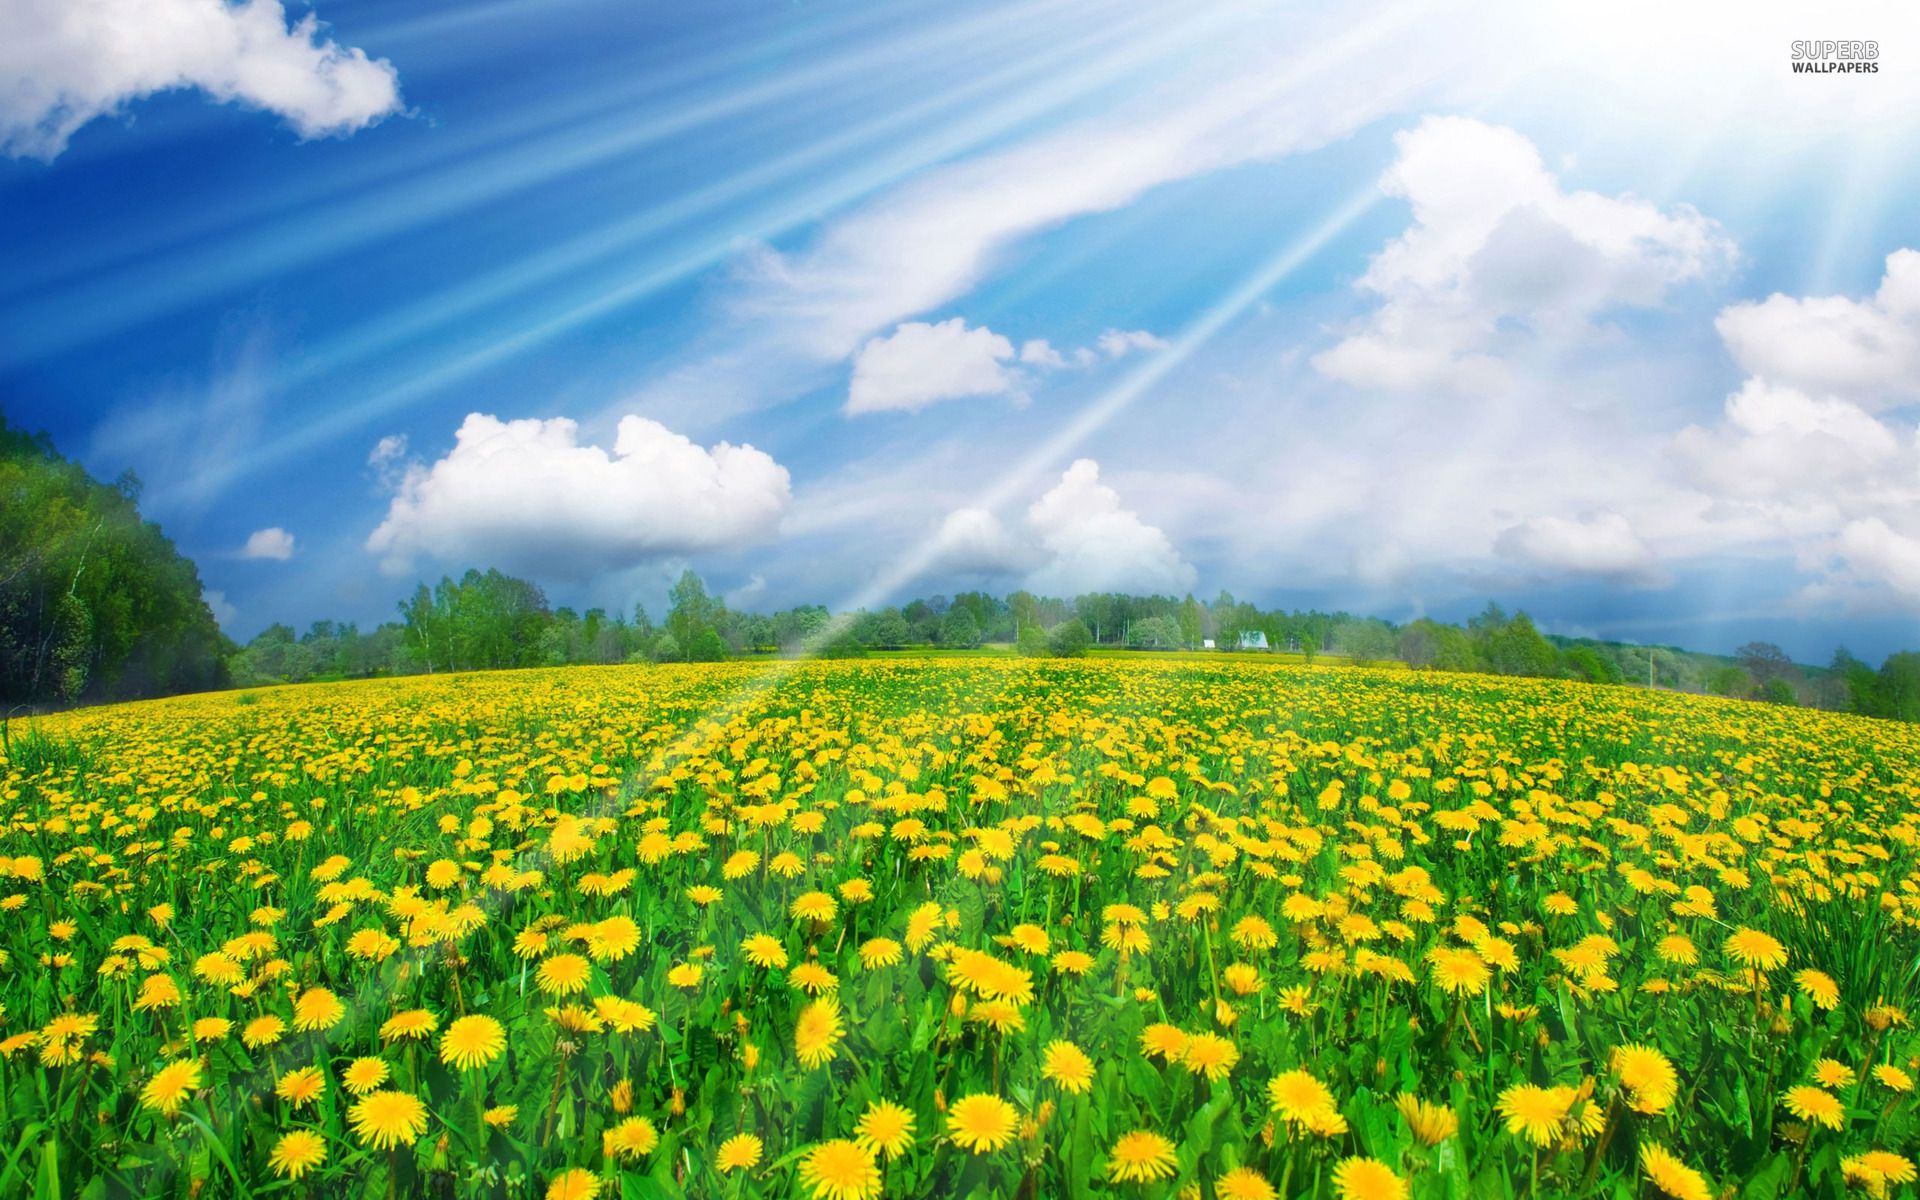 Sunshine Wallpapers Sunshine Wallpapers Sunshine Awesome Photos